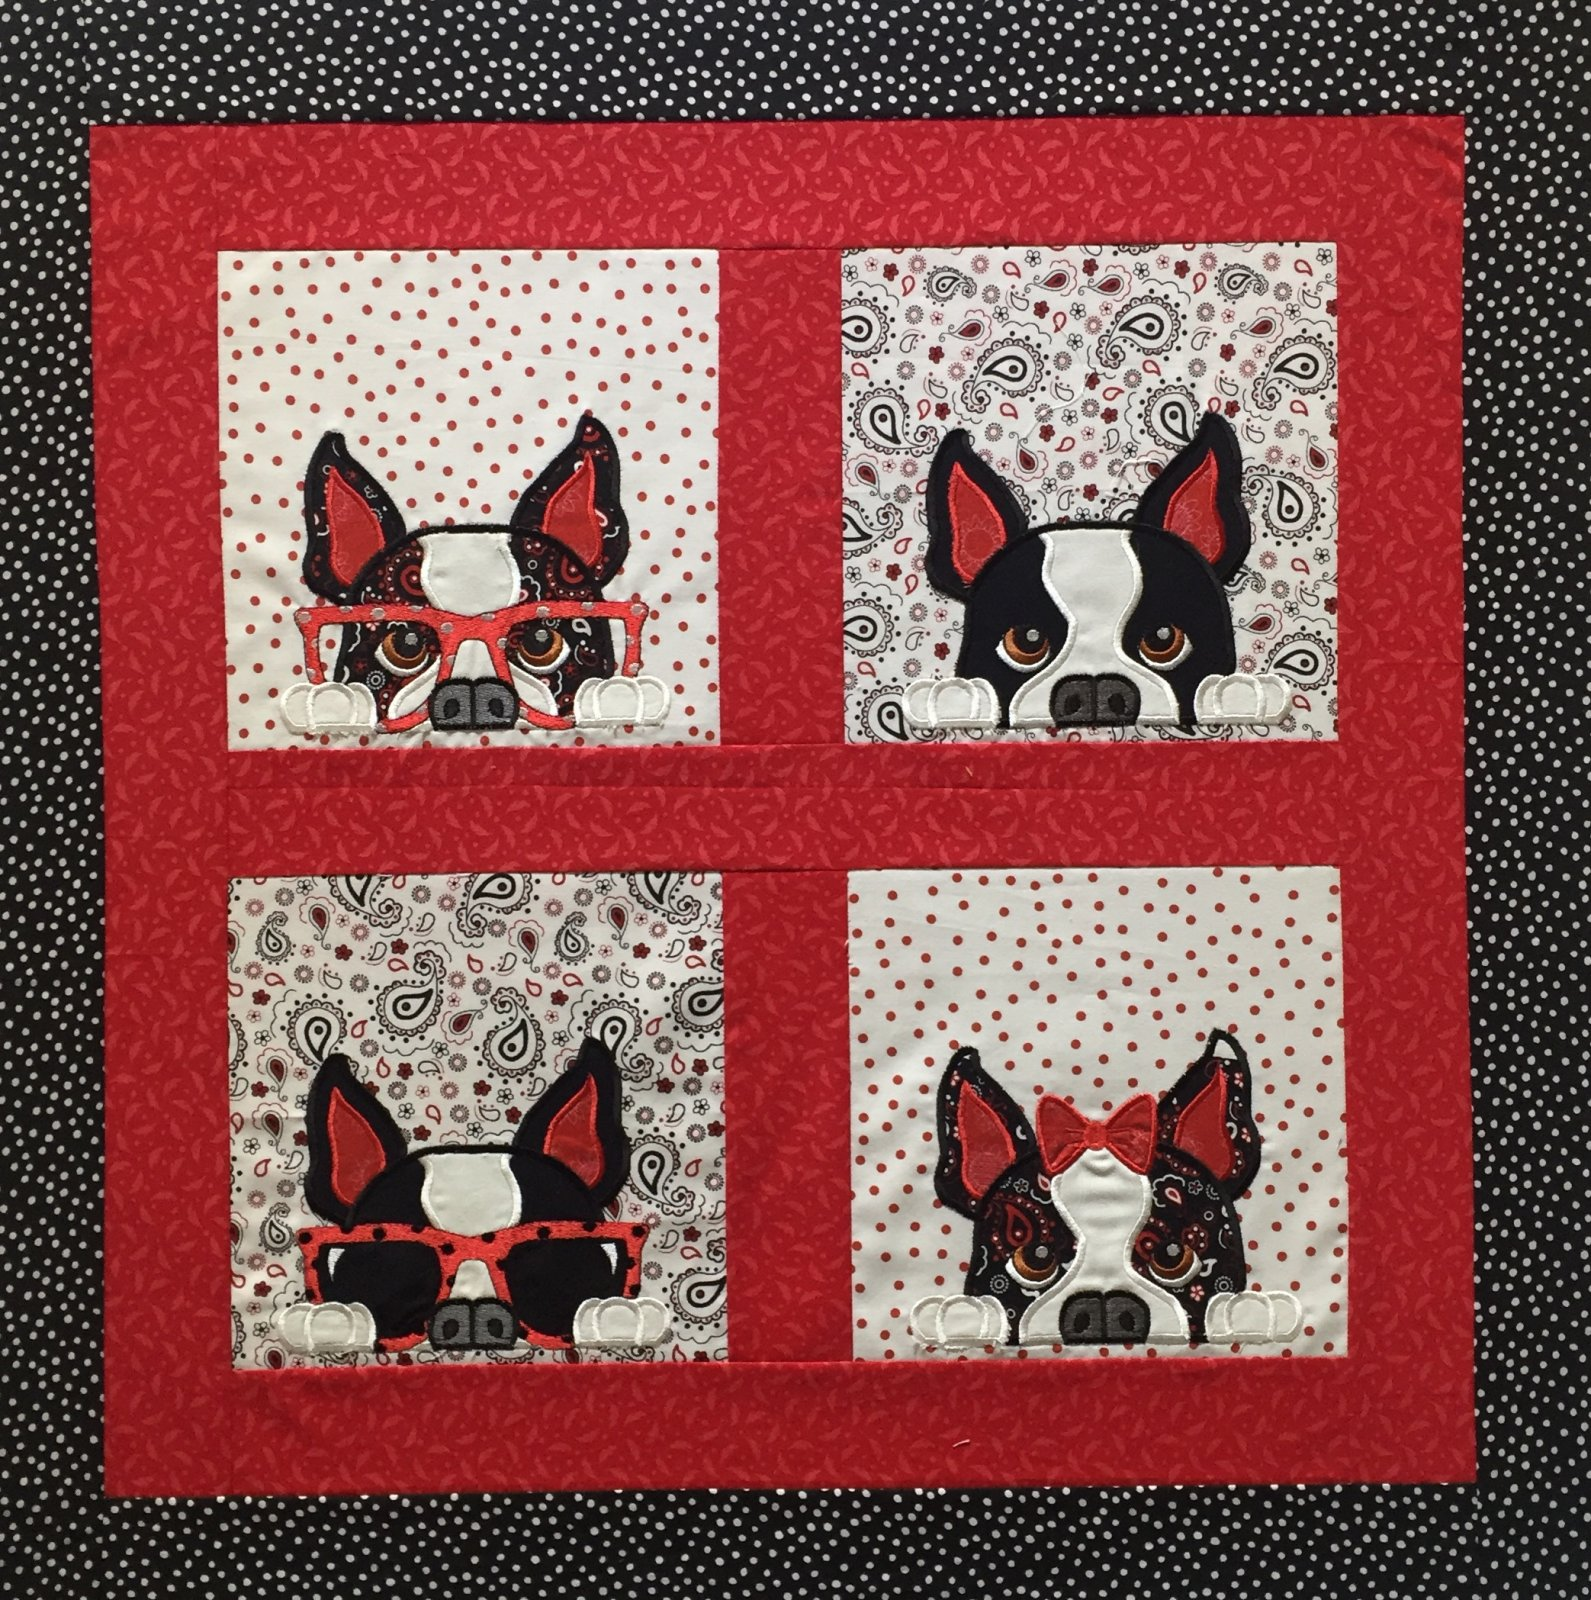 Boston Terrier Peek-a-boo designs : boston quilt - Adamdwight.com